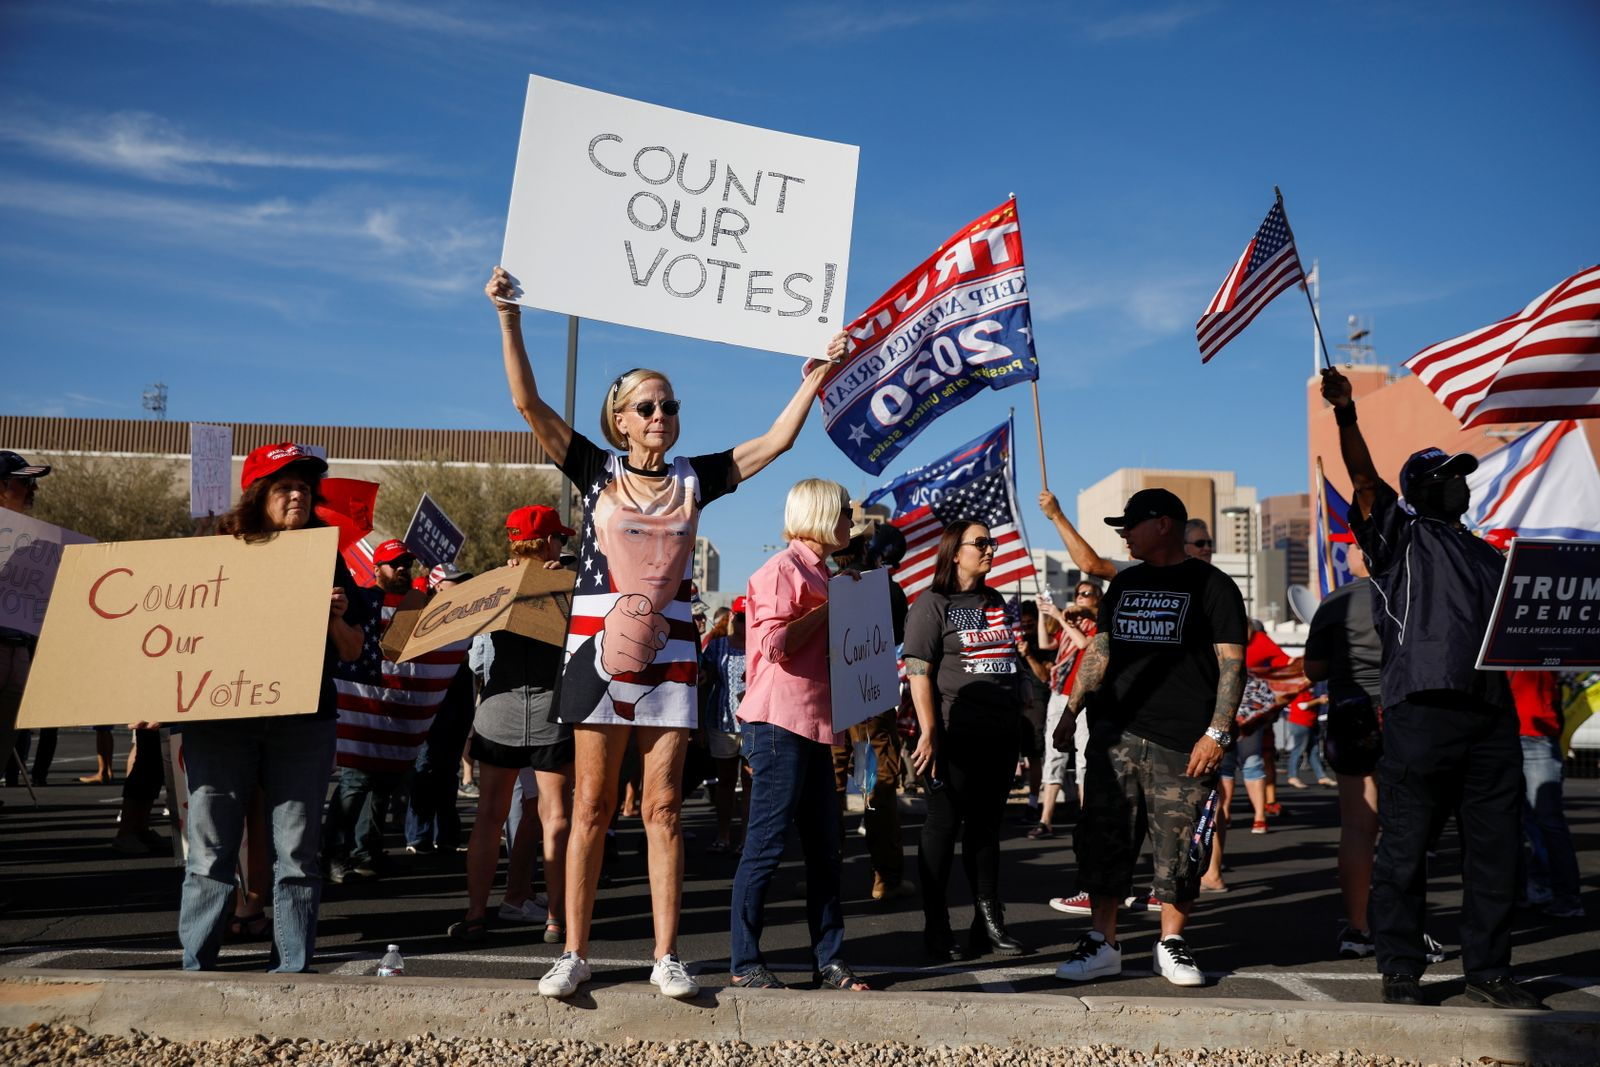 Protest following the 2020 U.S. presidential election, in Phoenix